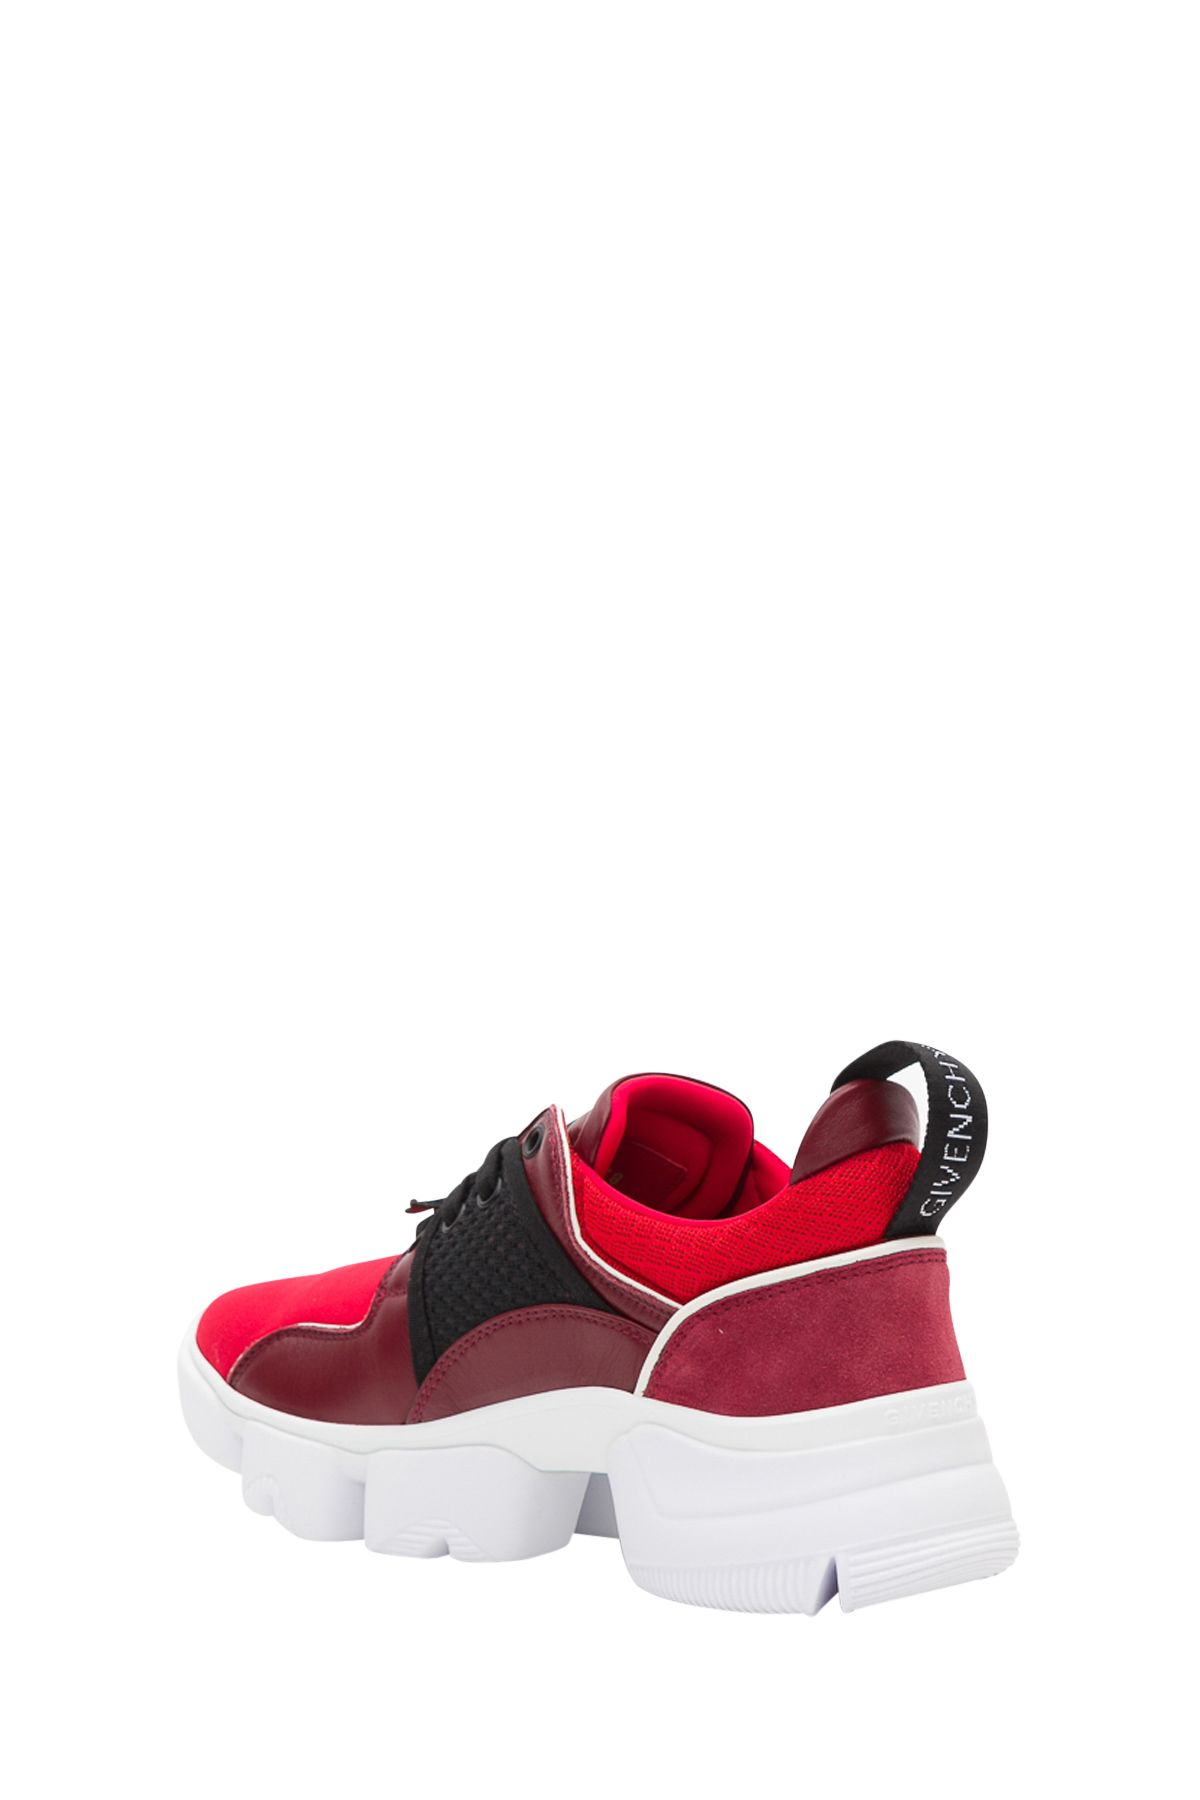 62b415e39dde Givenchy Givenchy Jaw Low-top Sneakers - Red - 10819732